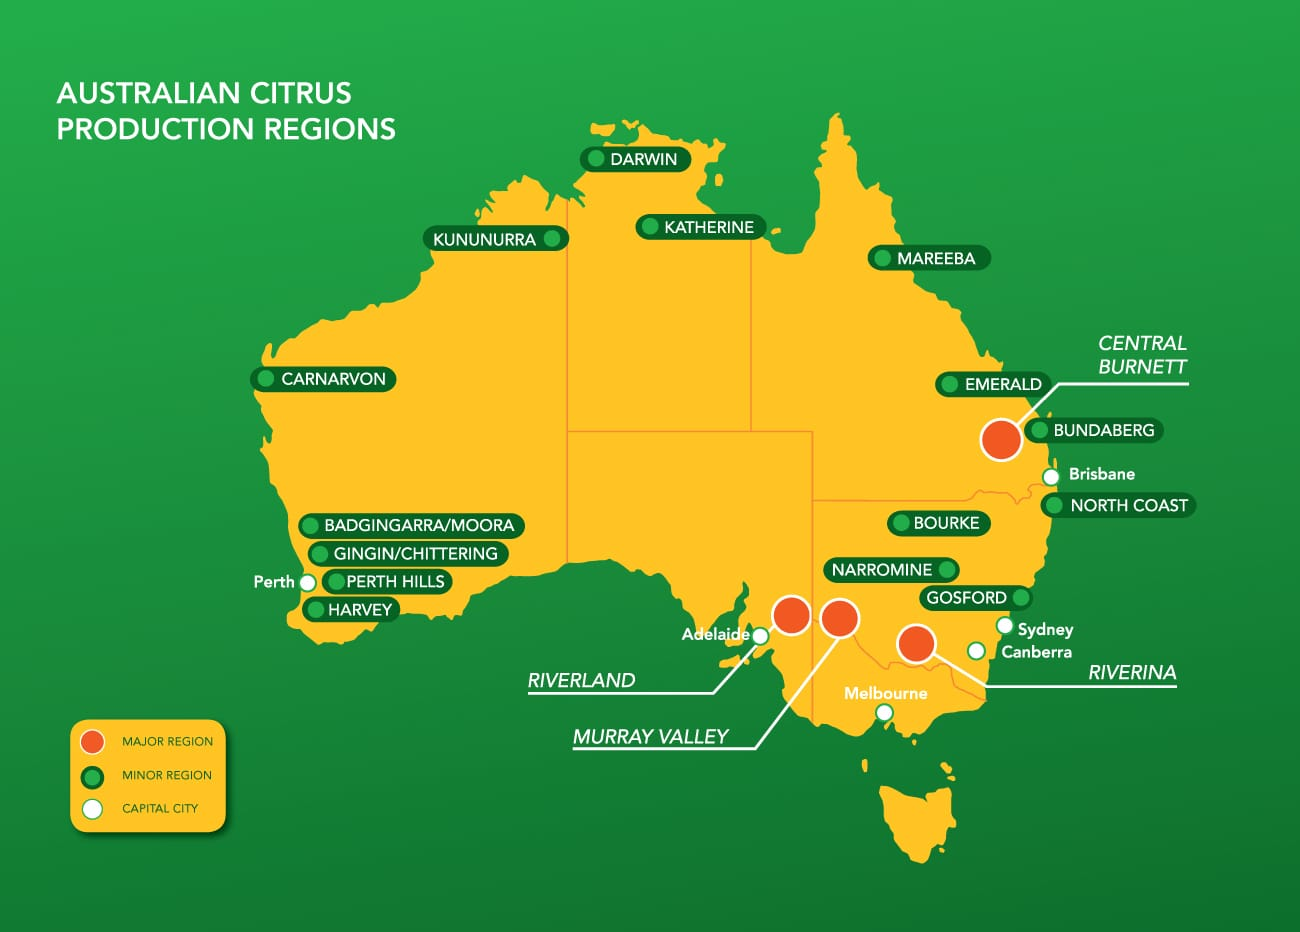 Australian Citrus Production Regions